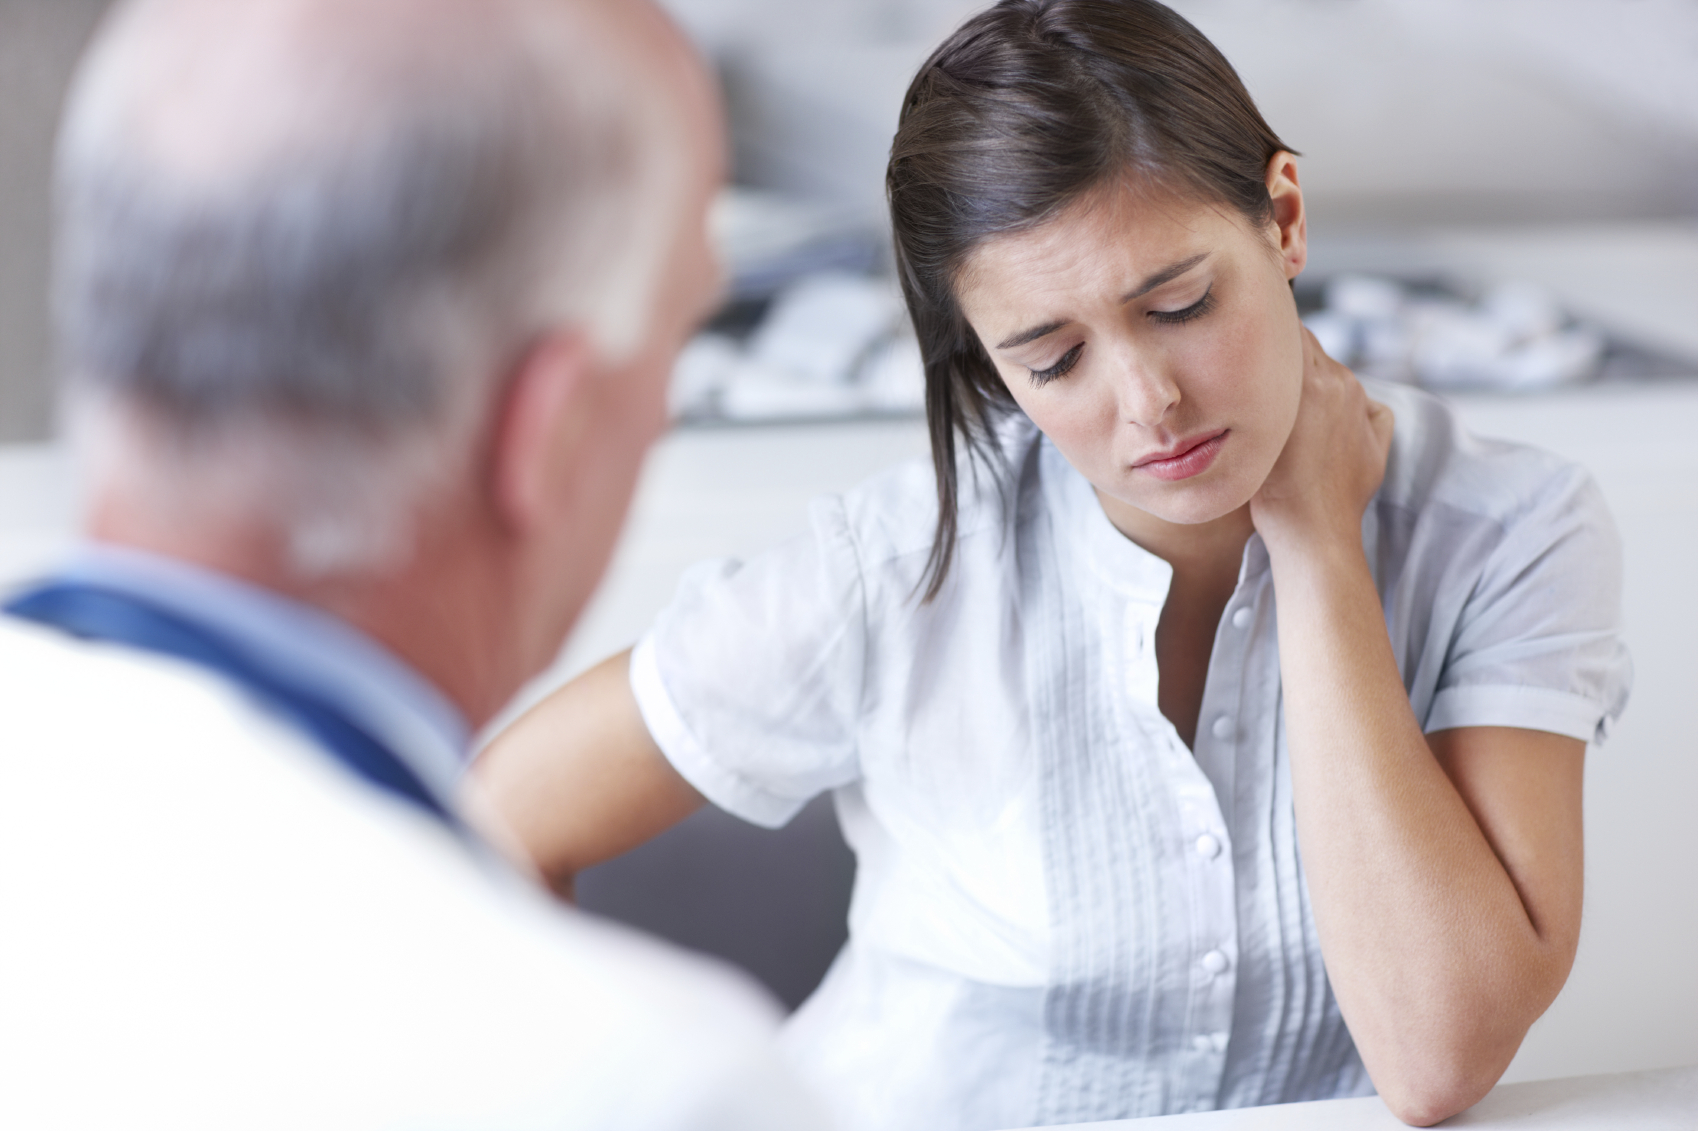 Distraught woman looking down while receiving some upsetting news from her doctor - copyspace